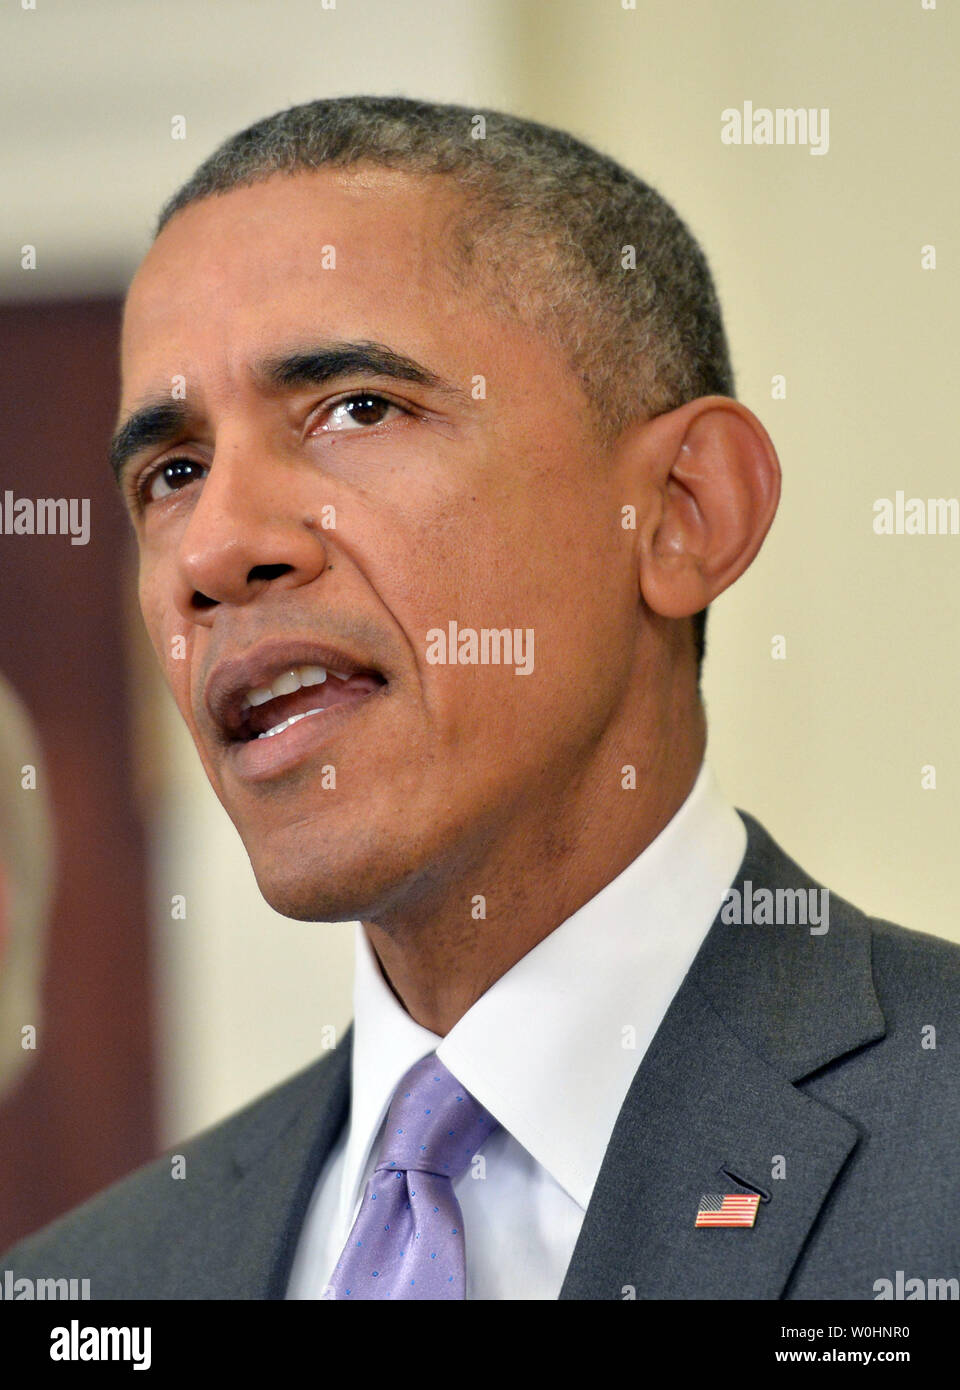 President Barack Obama speaks on requesting Congress to authorize military action against the Islamic State, at the White House in Washington, D.C. on February 11, 2015. Photo by Kevin Dietsch/UPI - Stock Image